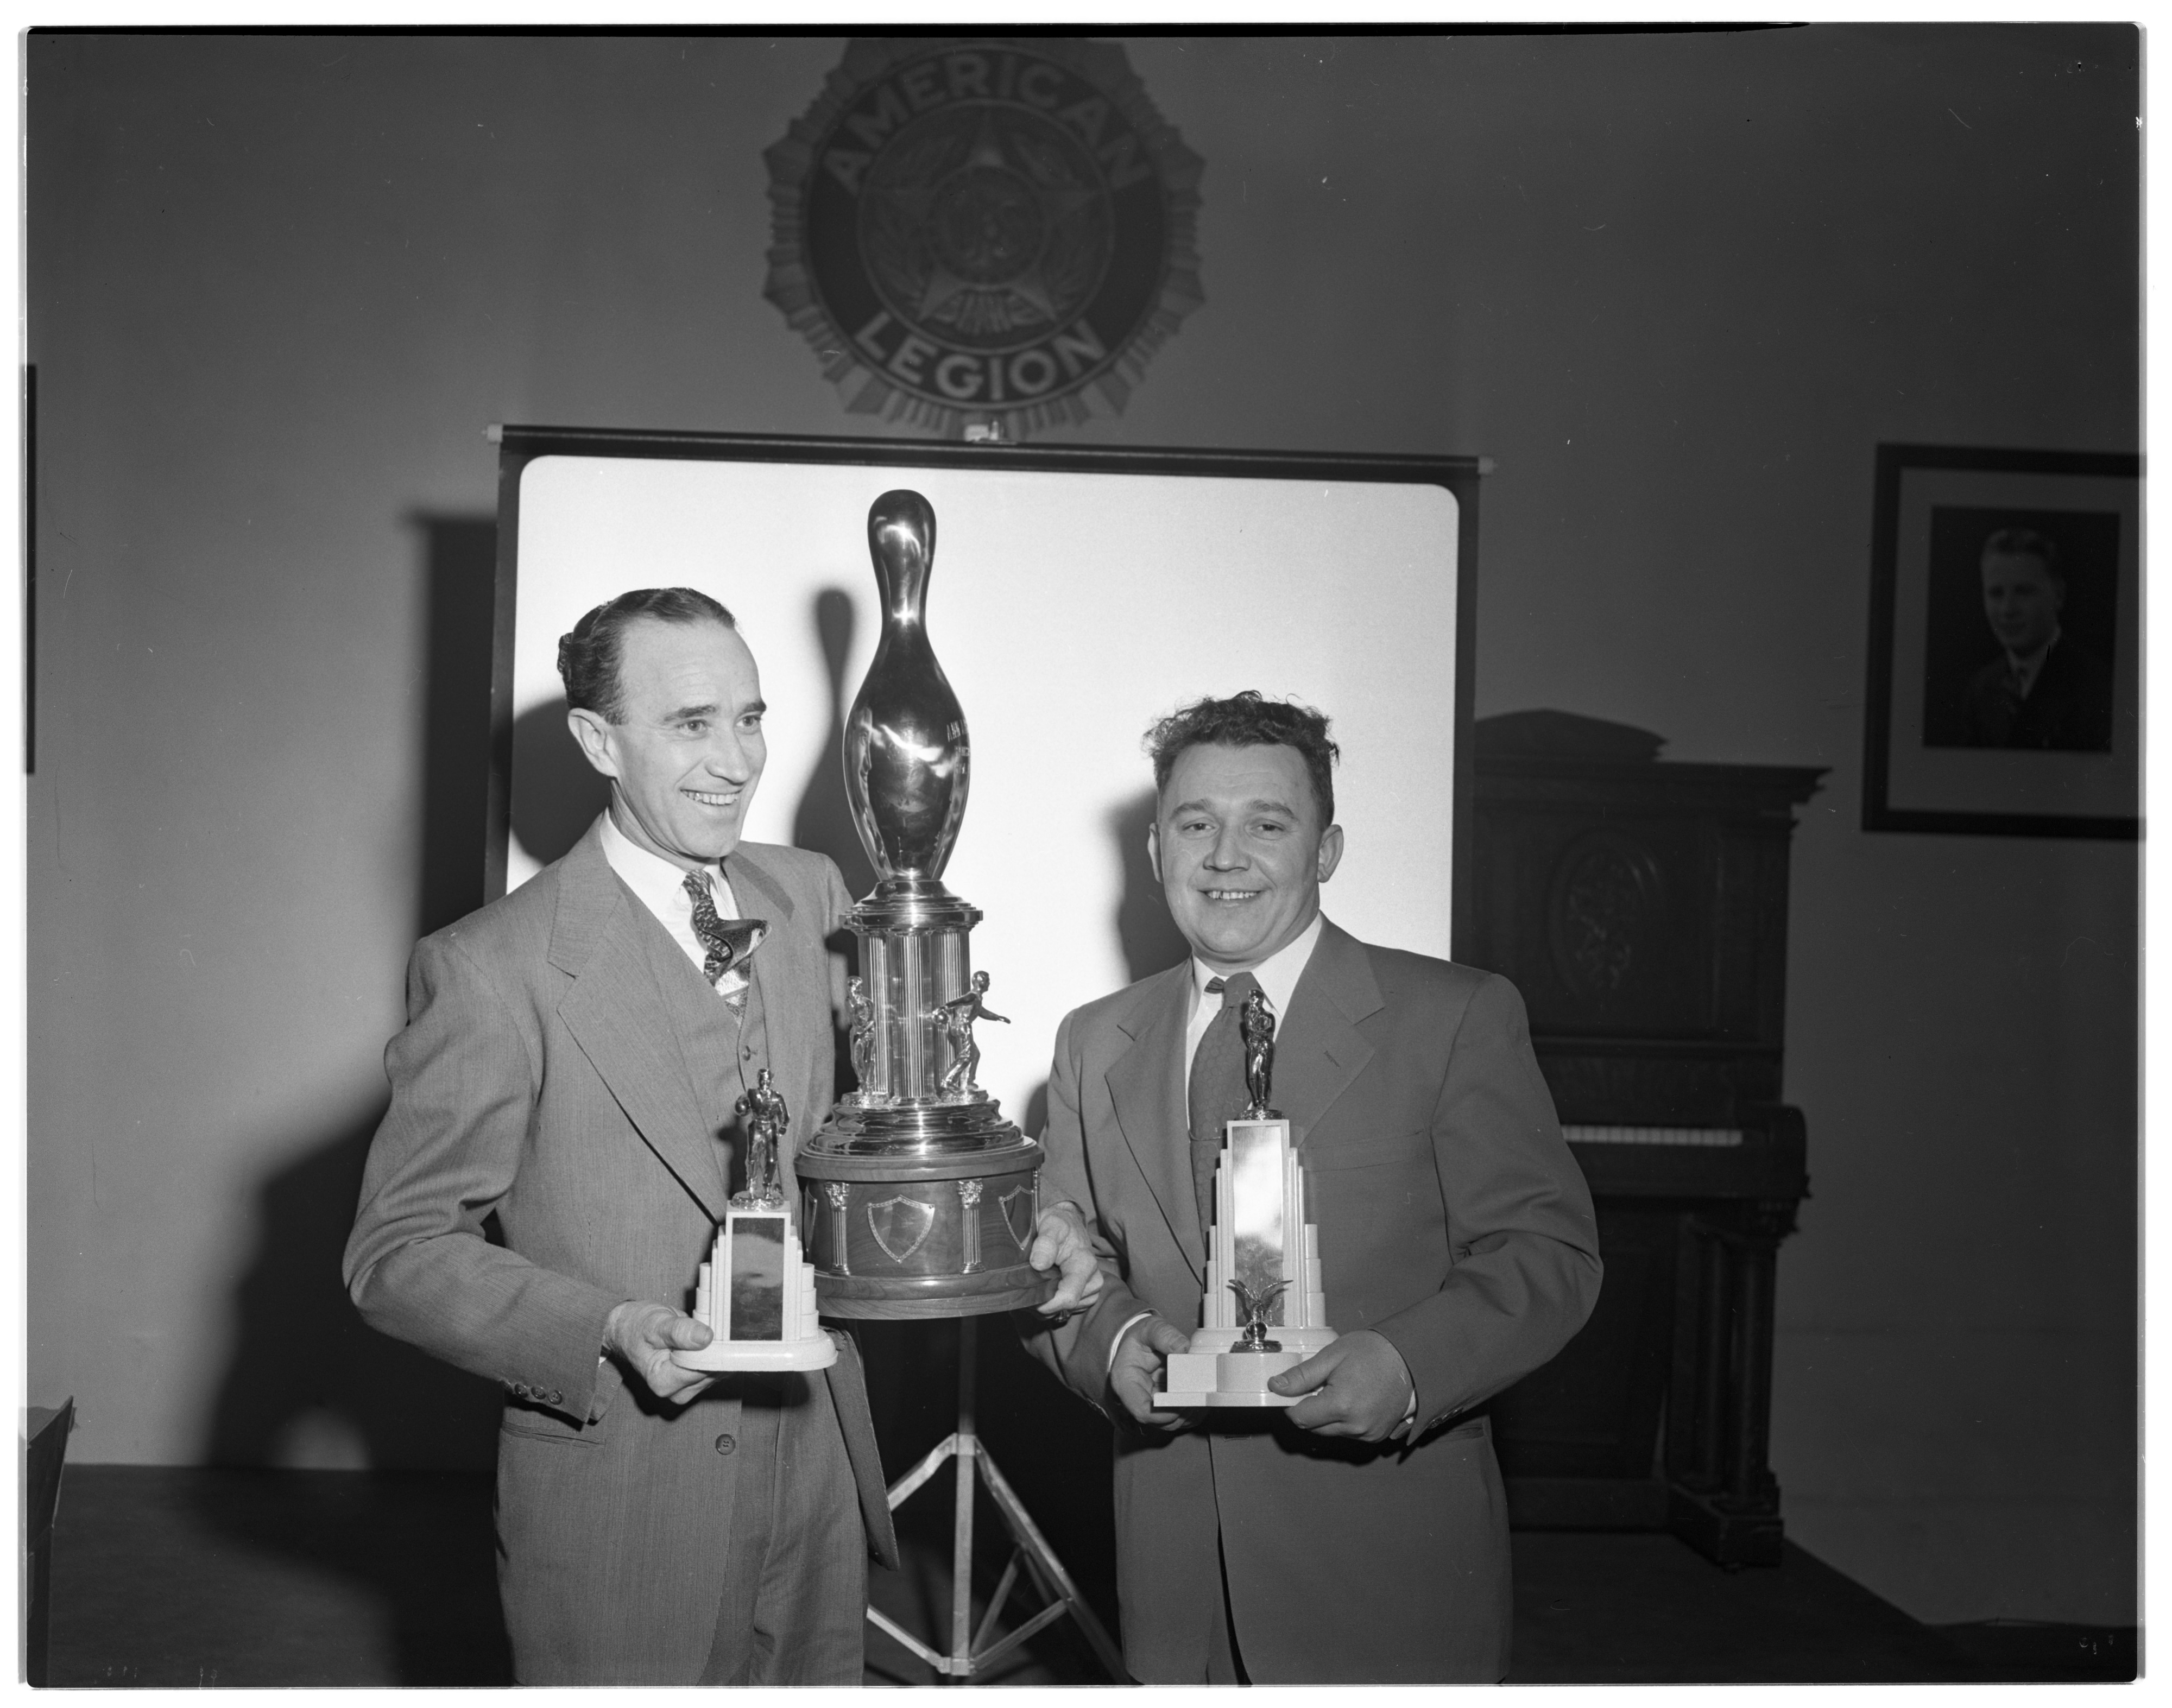 Dan Bandrofchak Wins Bowling Sponsor of the Year Trophy, January 1951 image